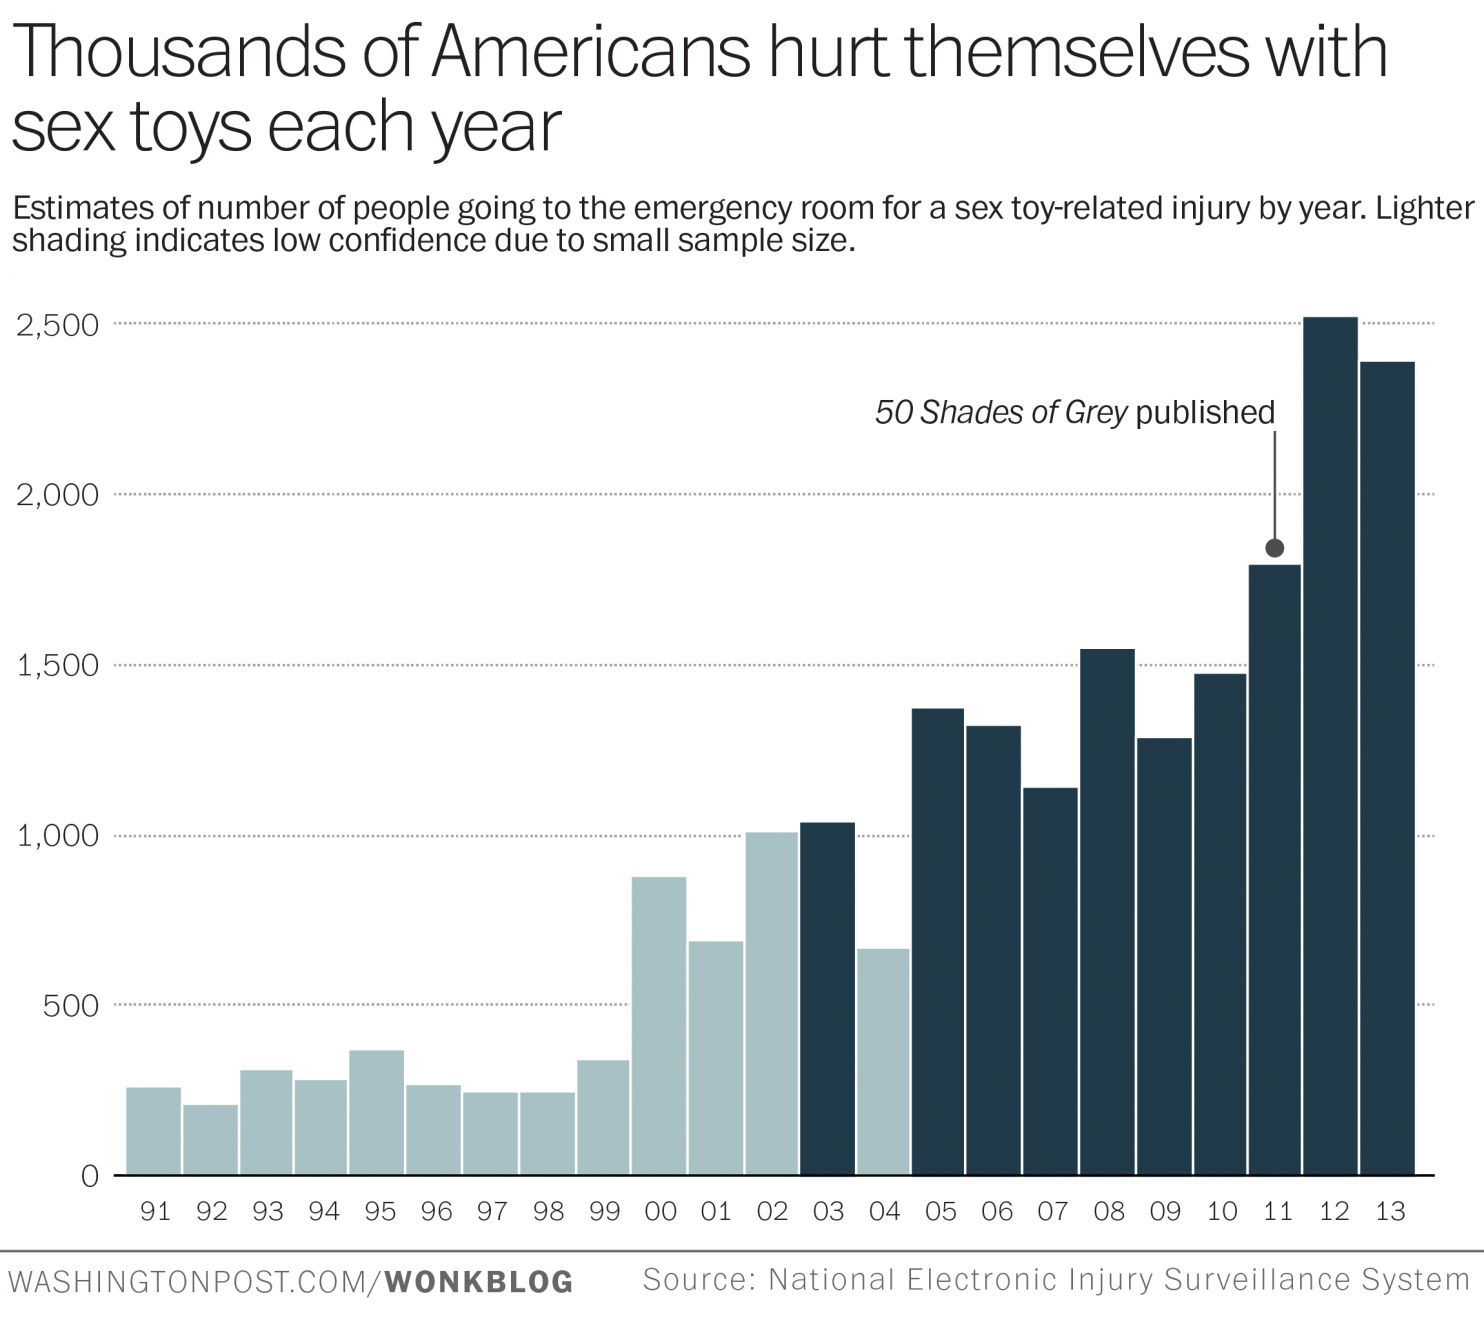 50 shades of grey to blame for spike in sex toy related injuries washington post sourced this neiss graph